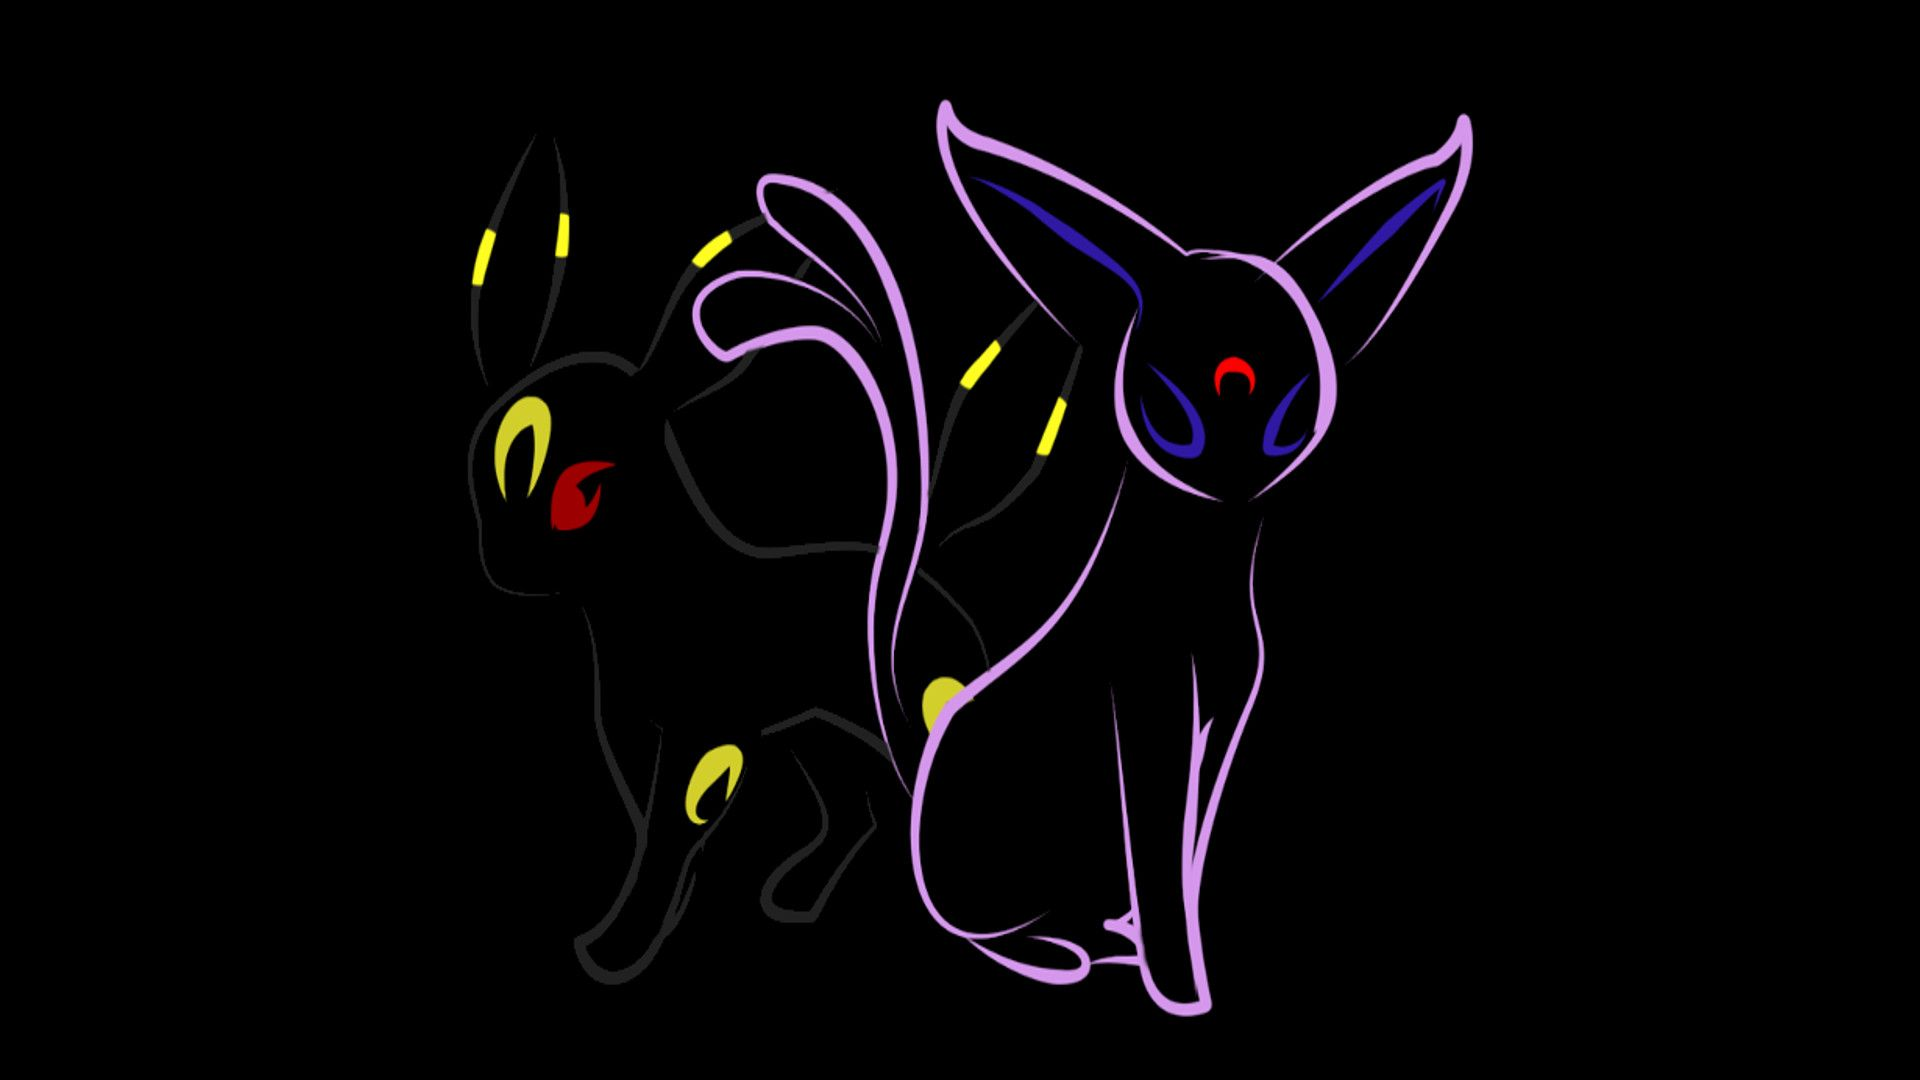 Espeon and Umbreon Wallpapers - Top